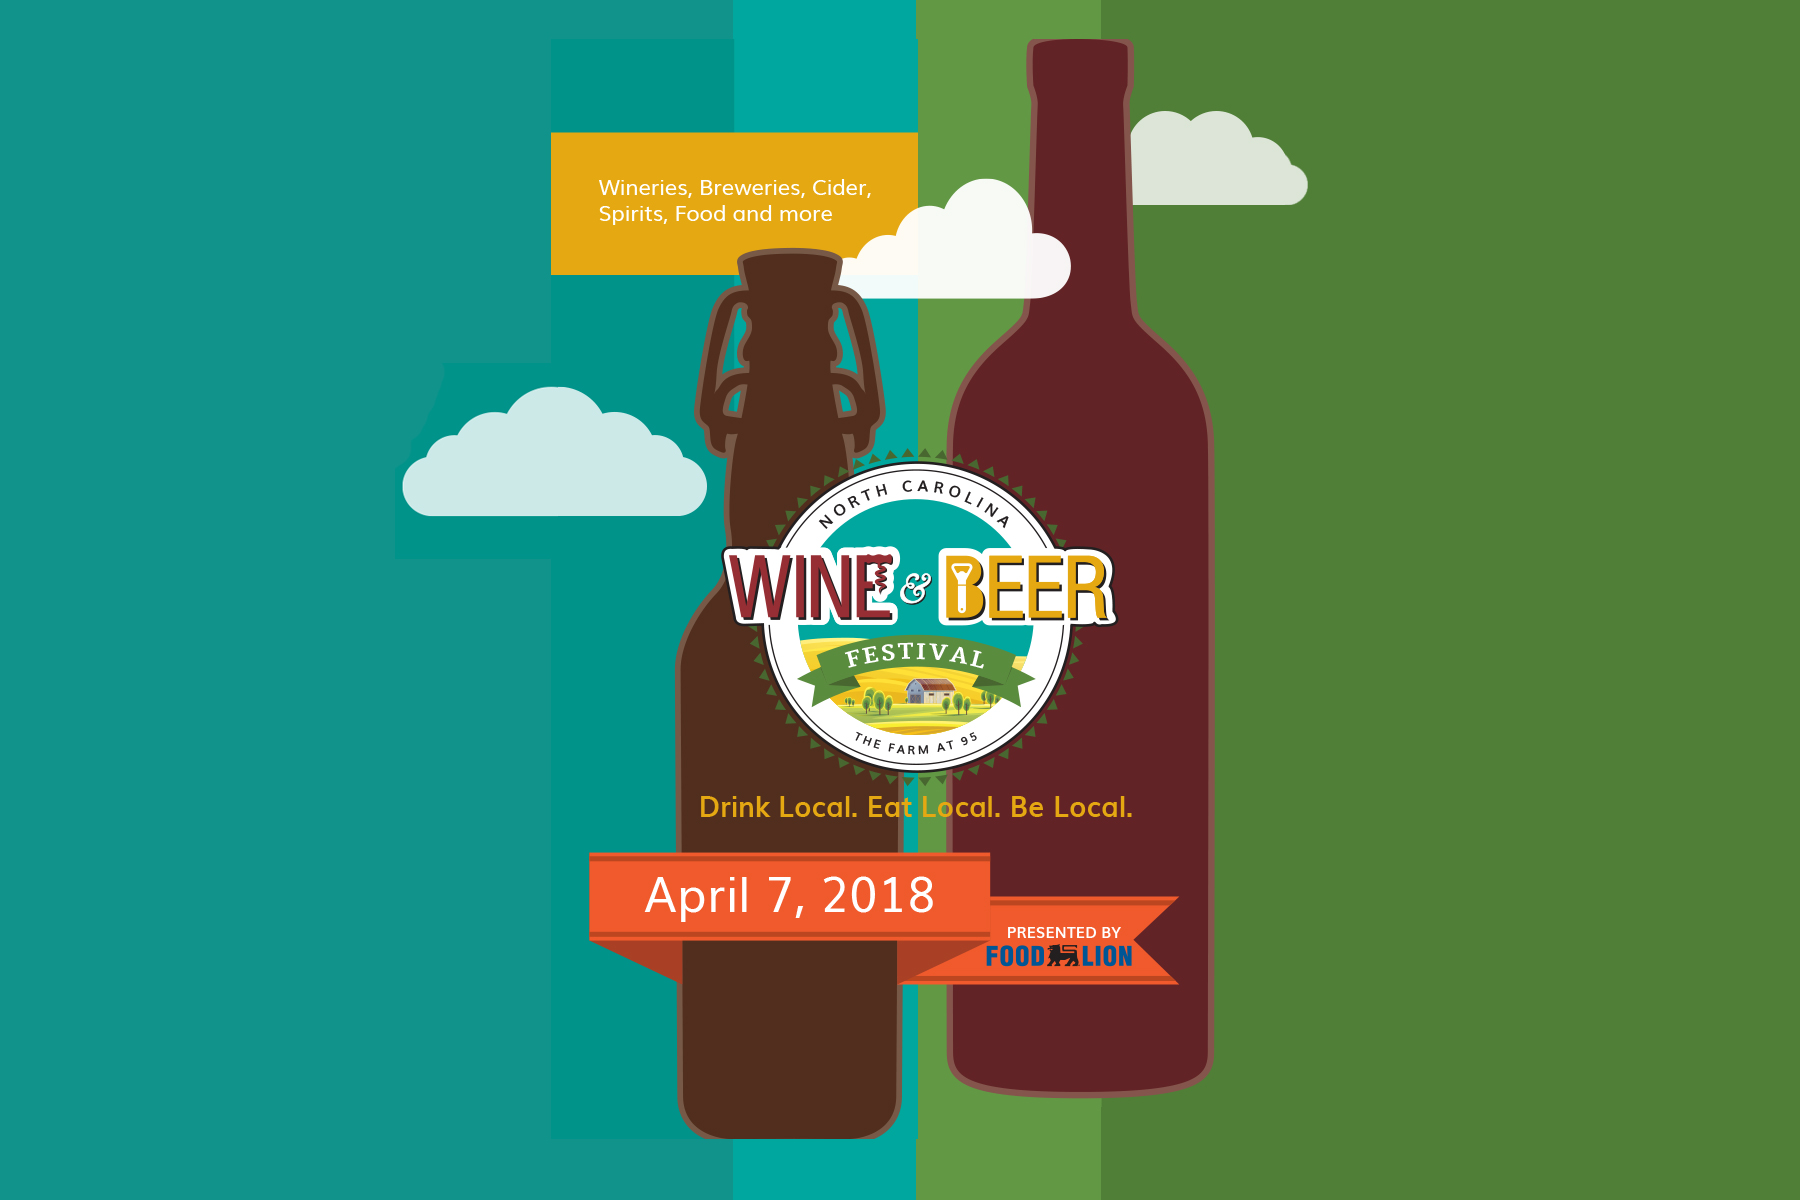 North Carolina Wine and Beer Festival